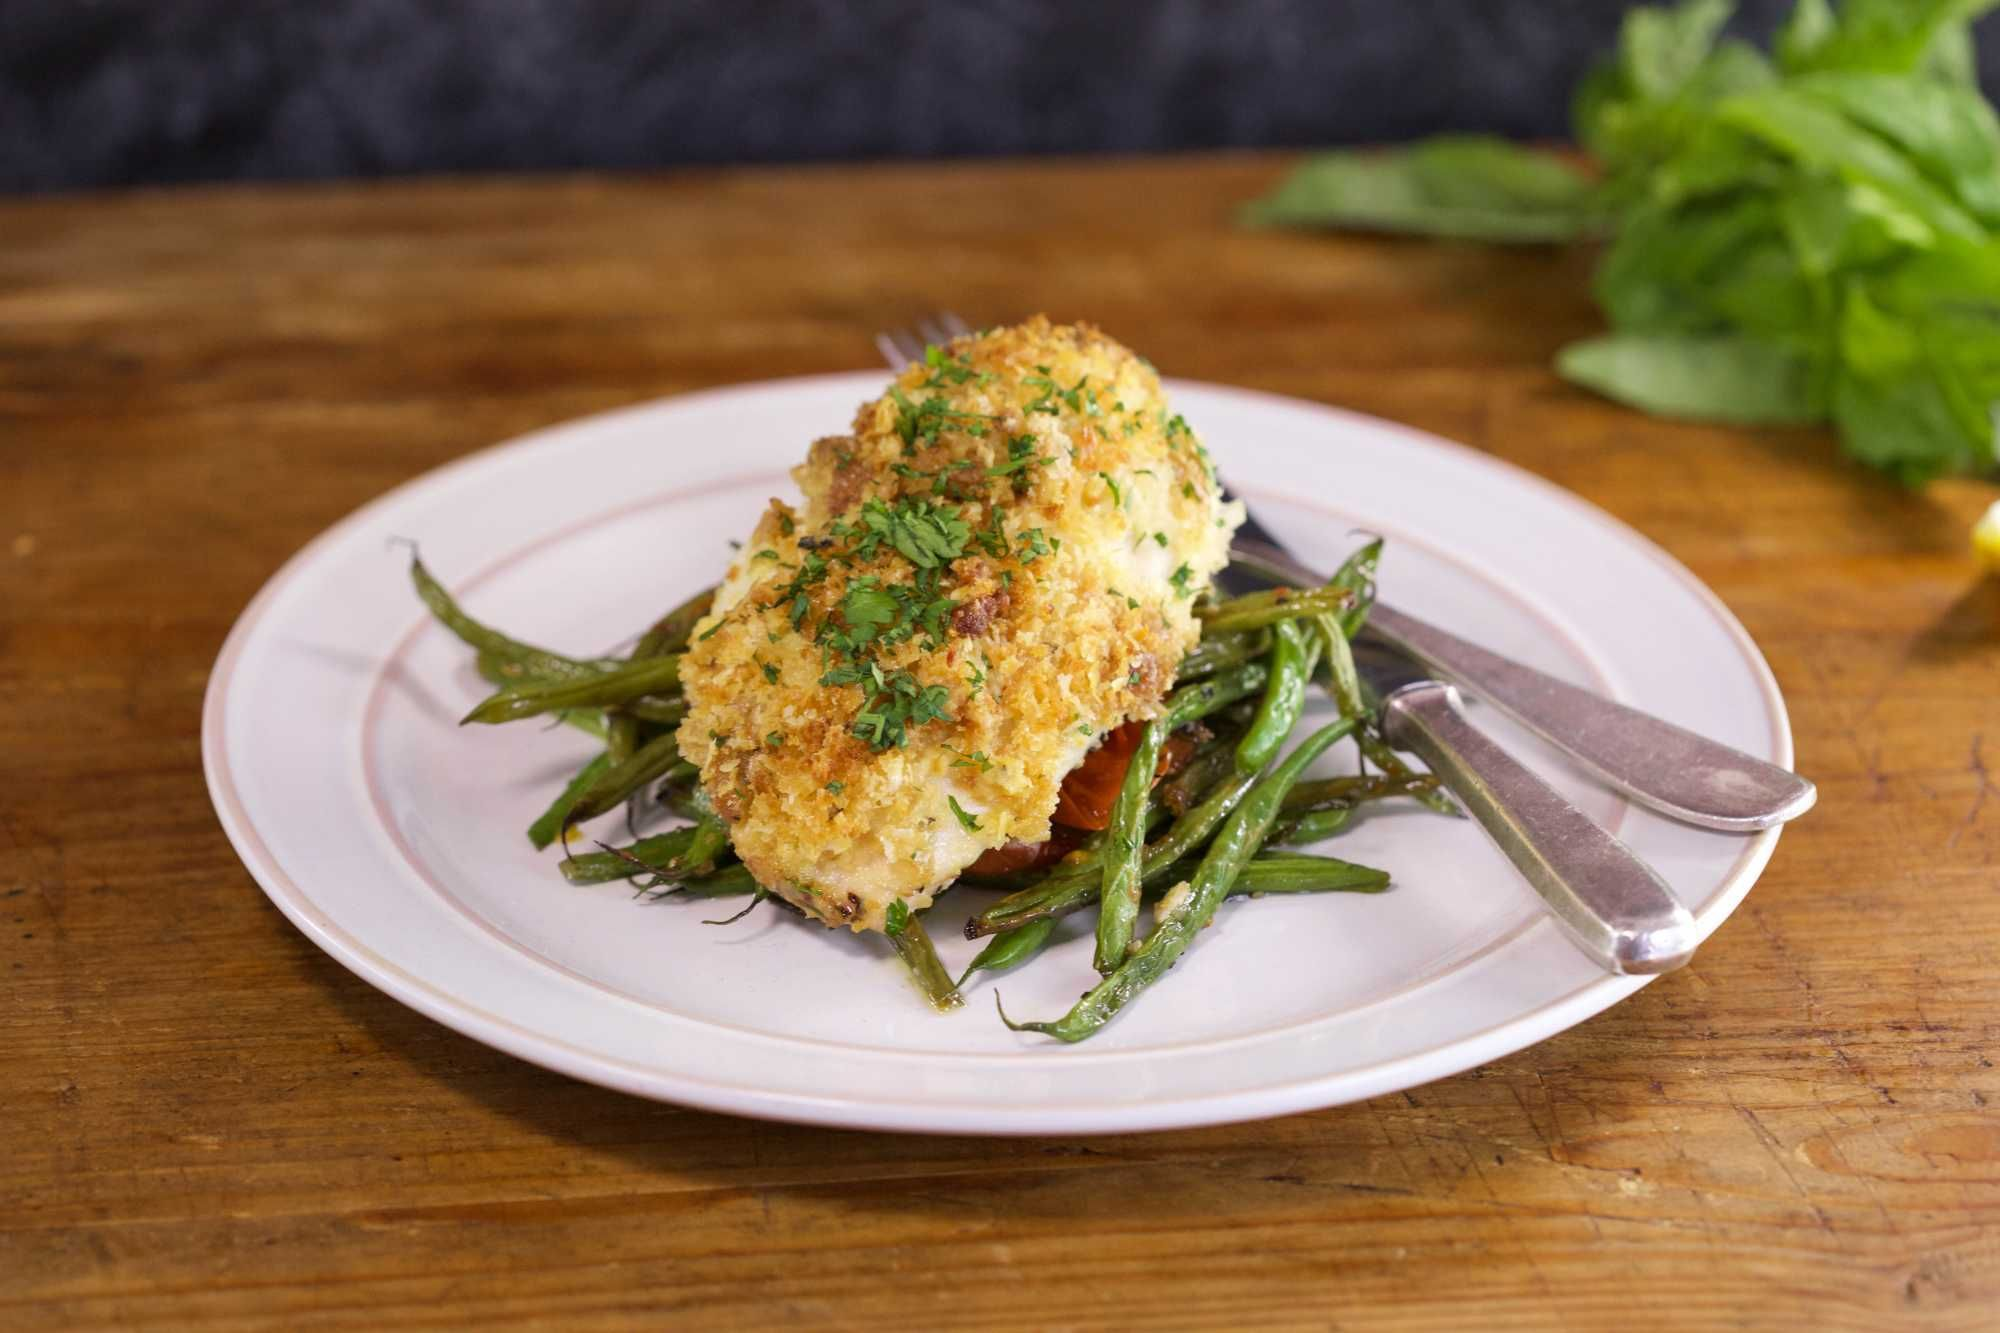 Chicken or Fish with Lemon-Parm Crust.